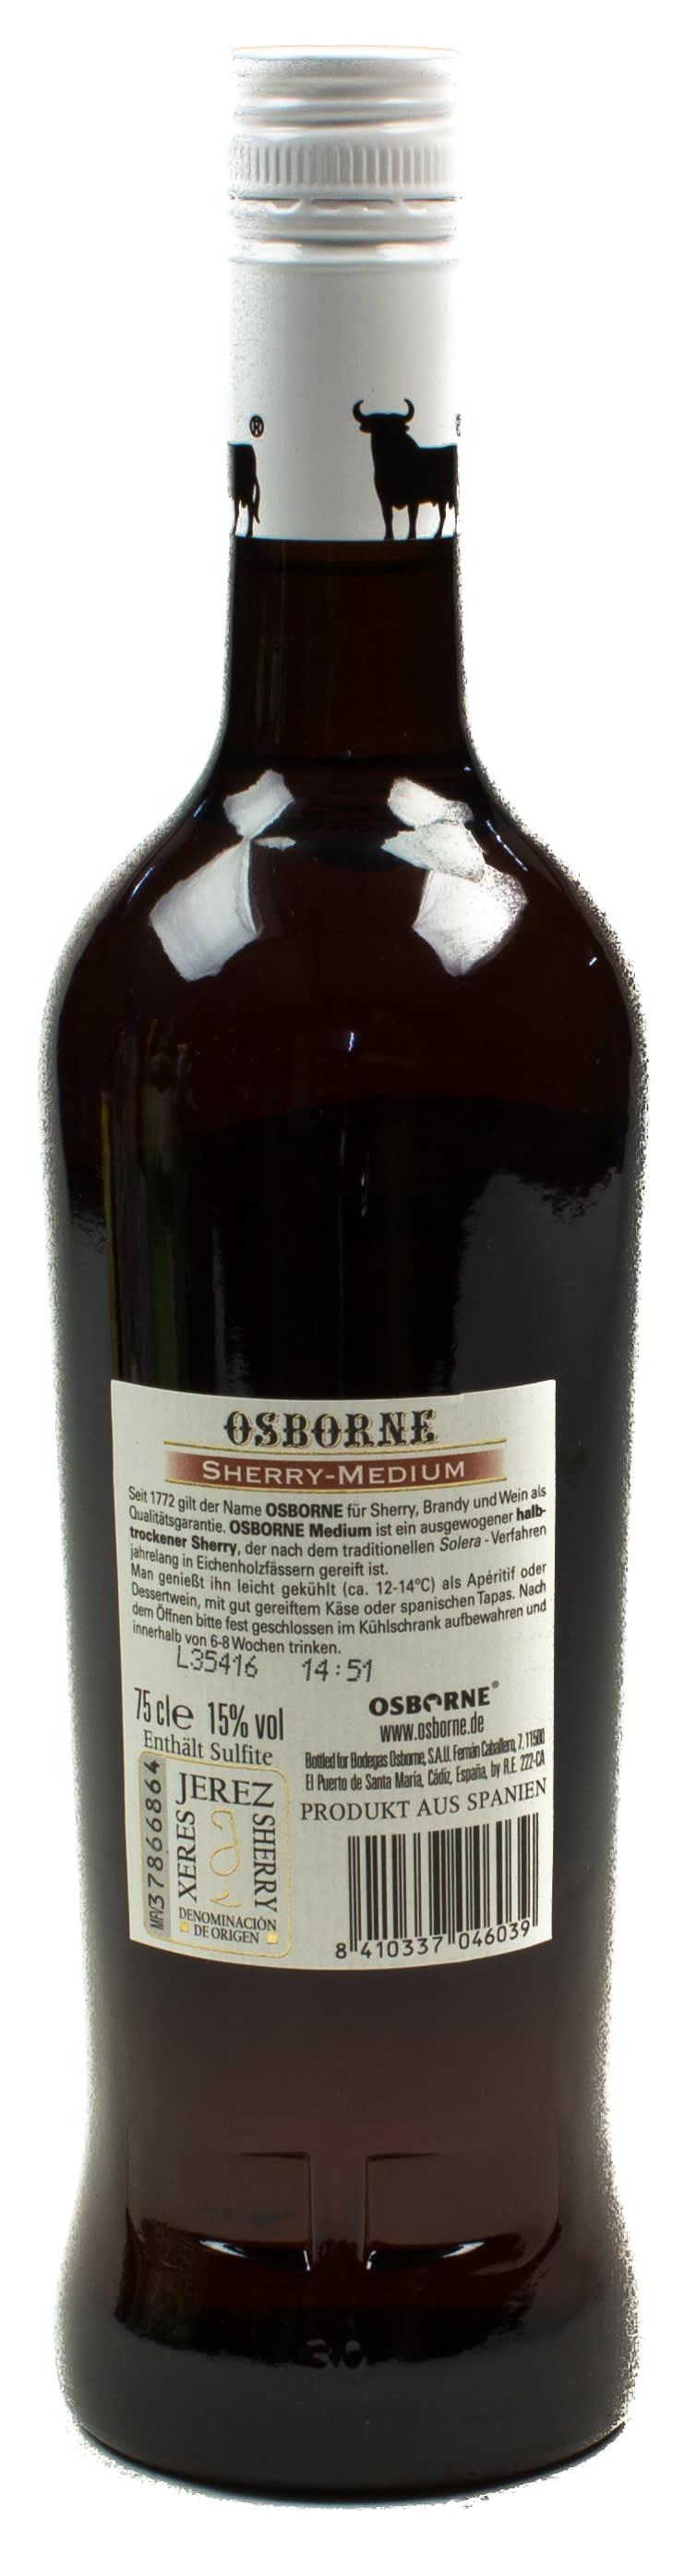 Osborne Sherry Medium 0,75 l Glas